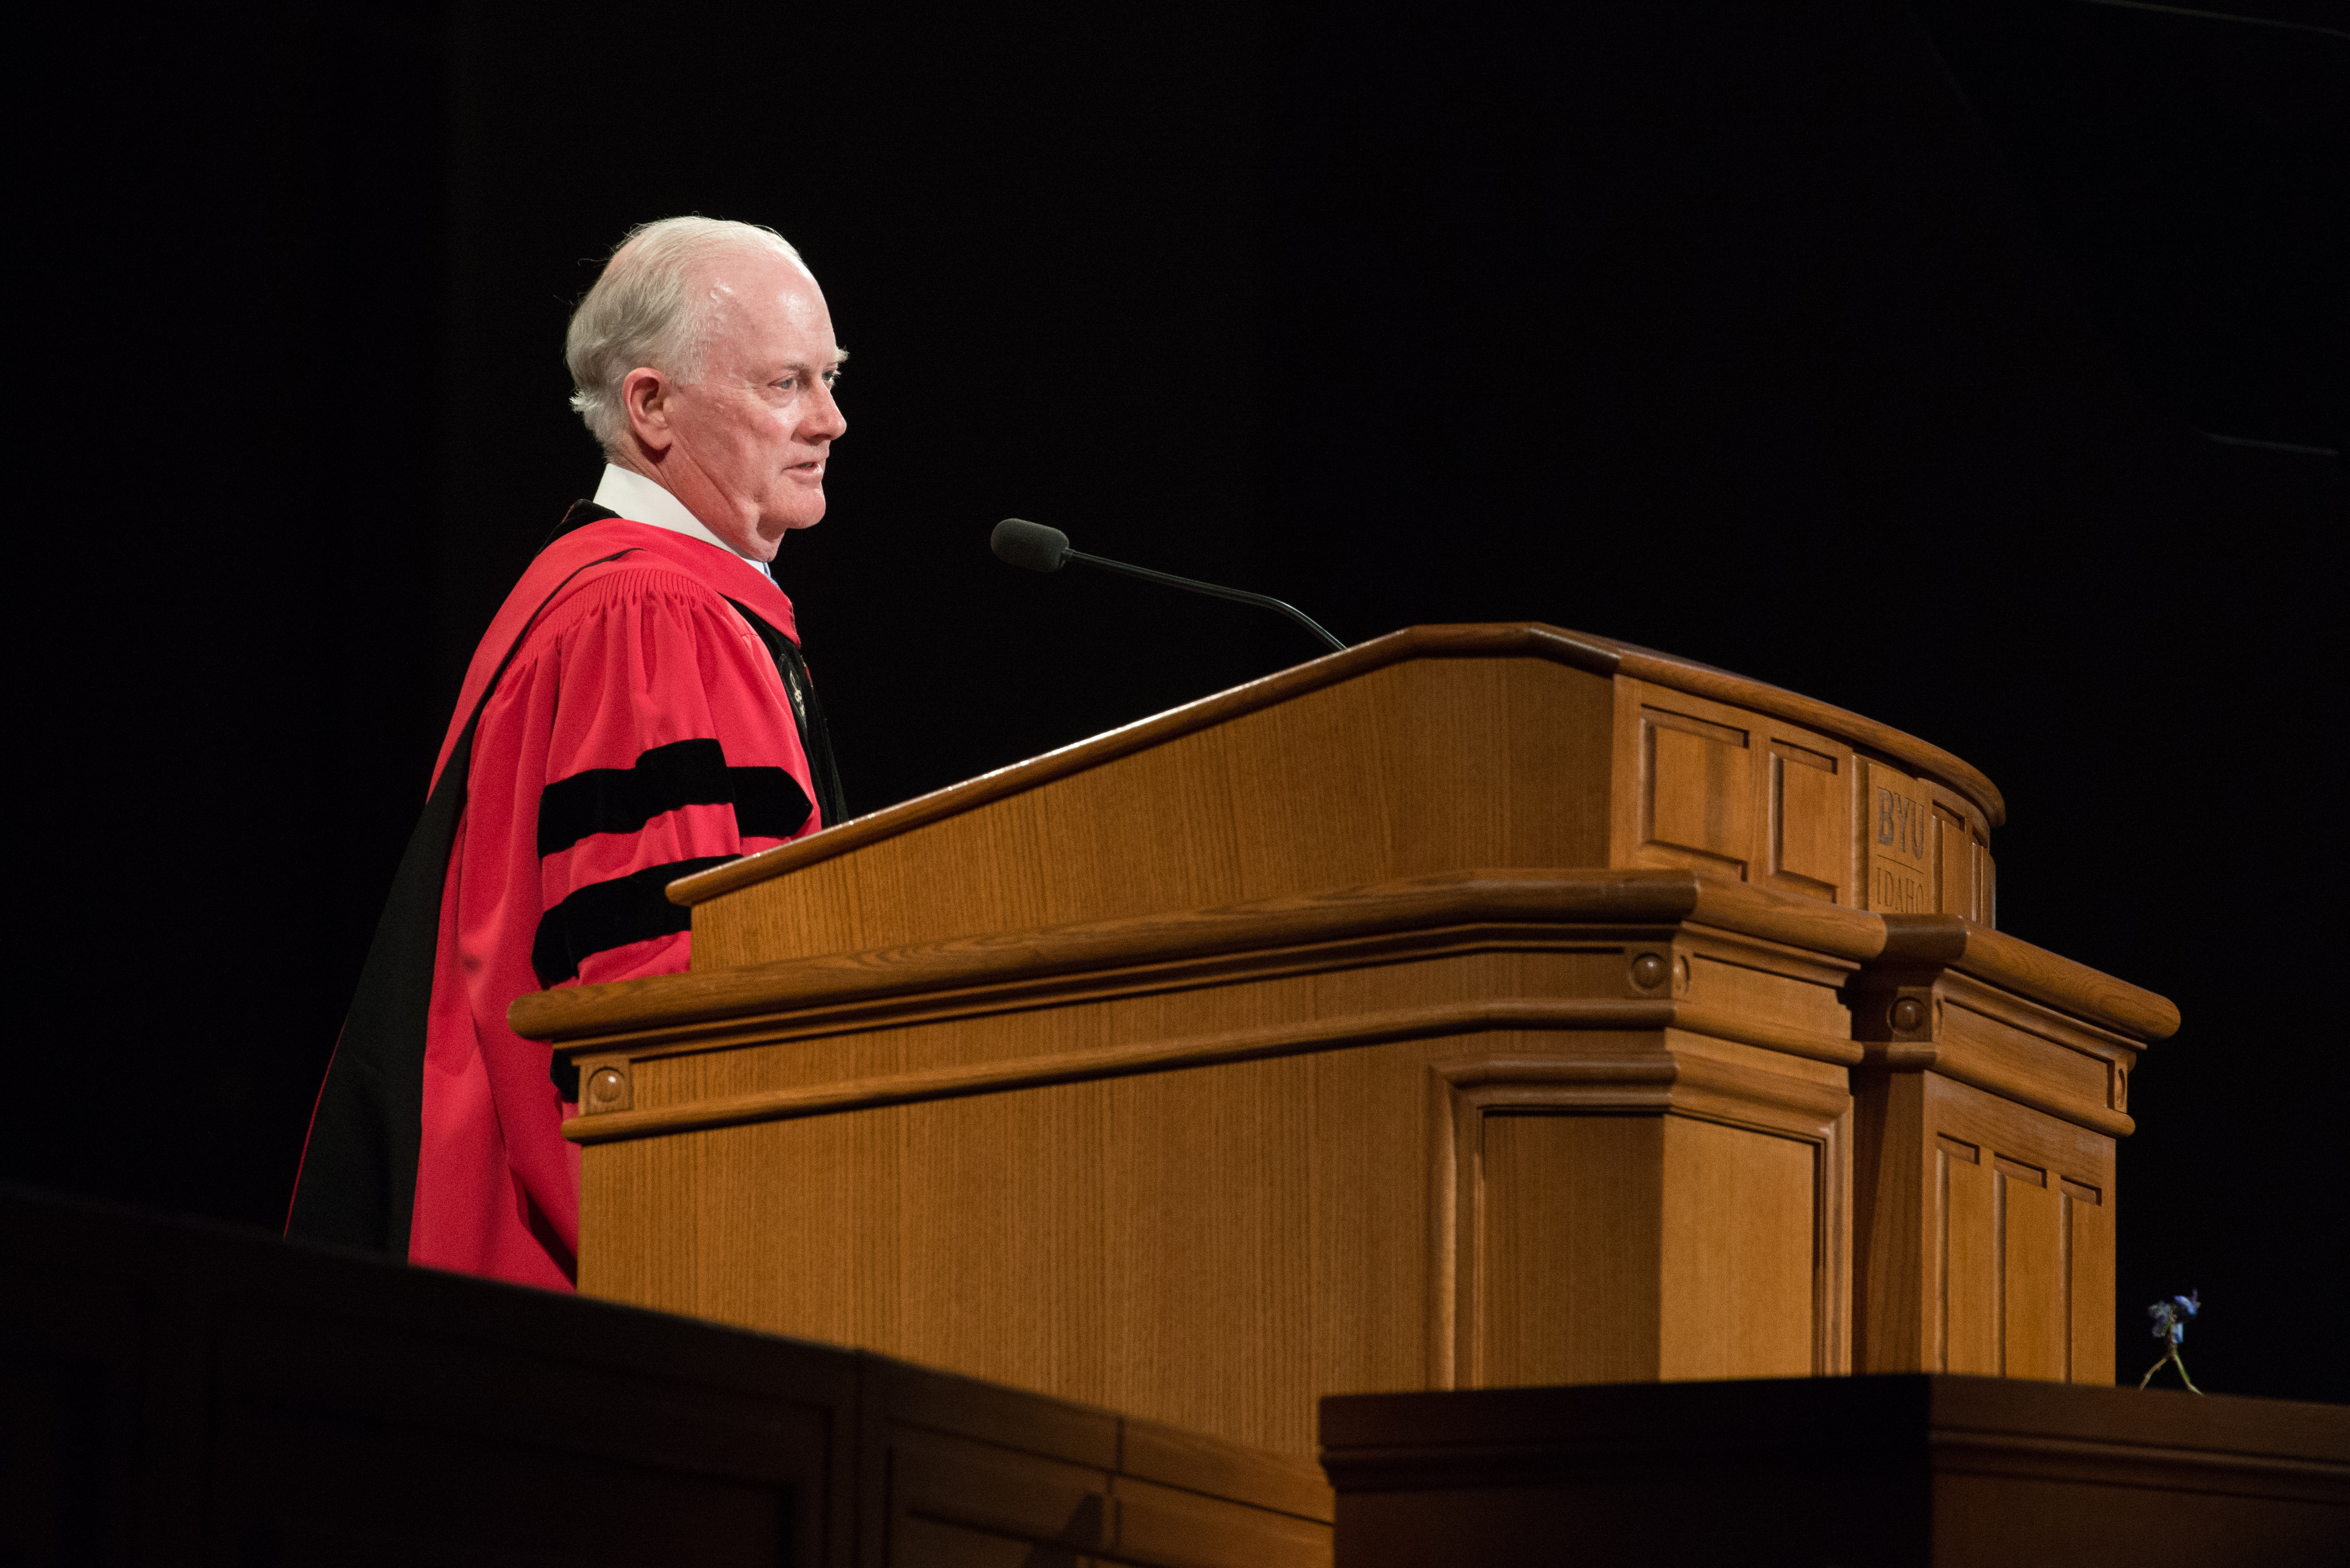 Elder Kim B. Clark, General Authority Seventy and commissioner of the Church Educational System and former President of BYU-Idaho, speaks to BYU-Idaho graduates during commencement exercises on July 23, 2019.